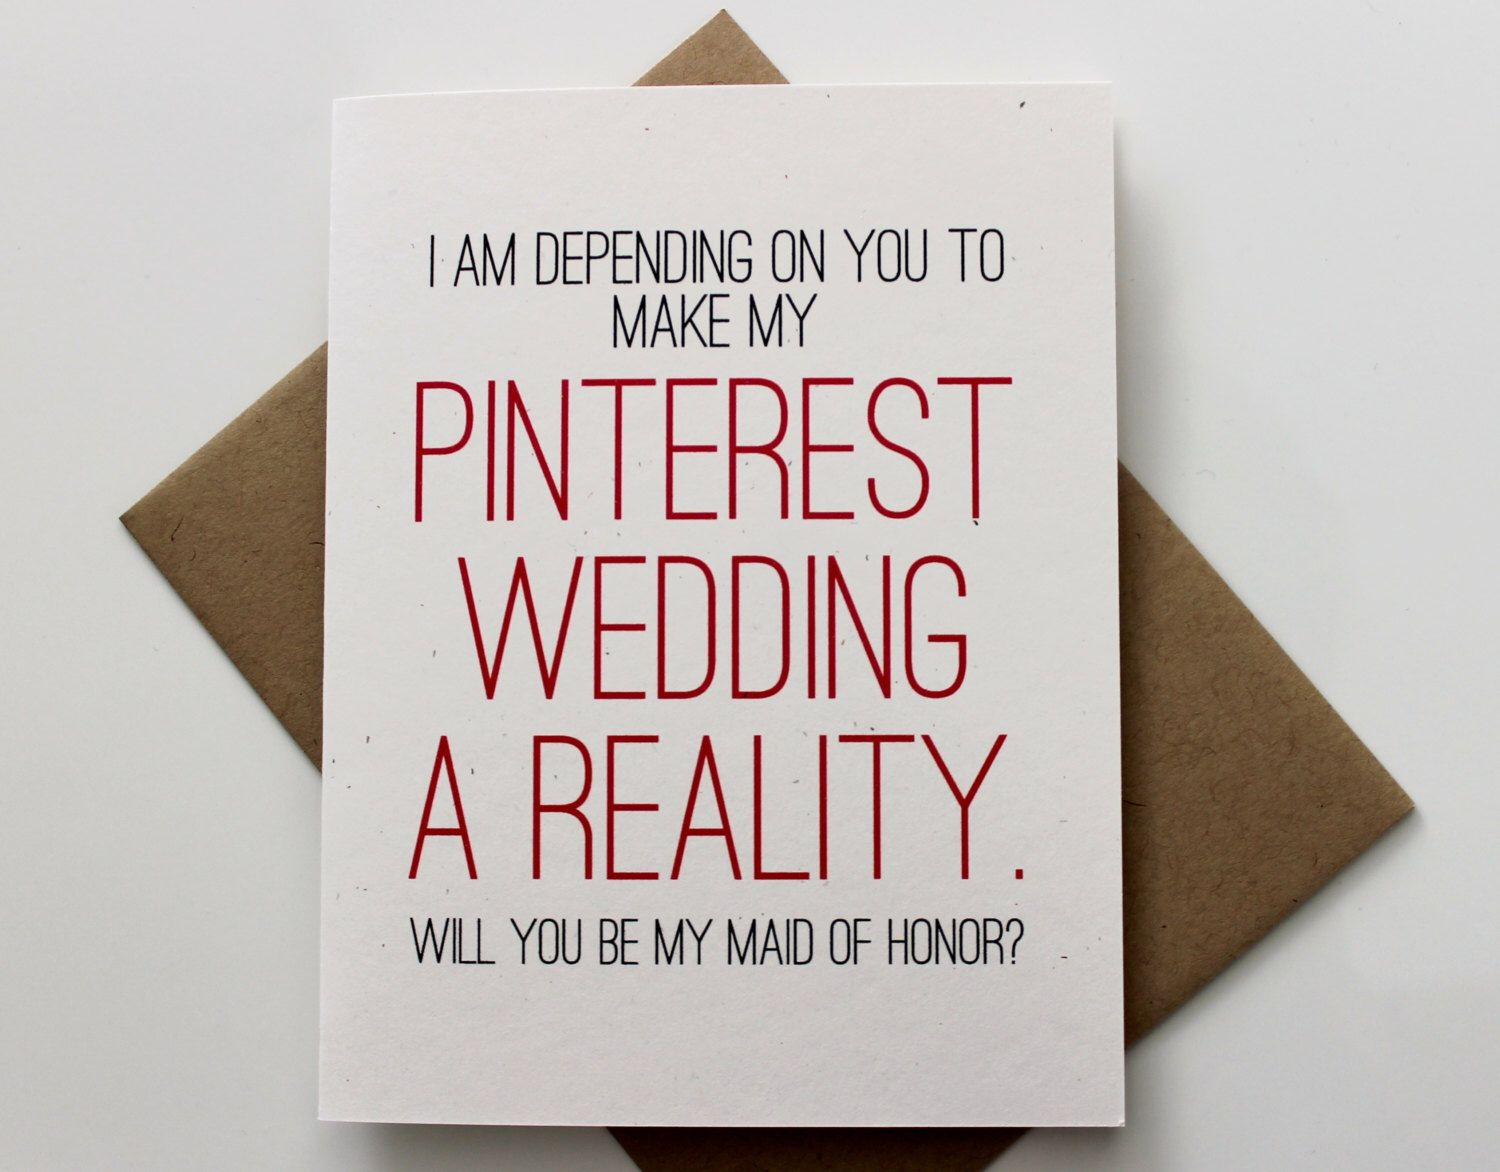 funny wedding card messages for friends%0A Will You Be My Bridesmaid Card  Funny Bridesmaid Card  Maid of Honor Card   Bridesmaid Proposal  Wedding Card  Bridesmaid Card  Funny Card   Messages   Funny